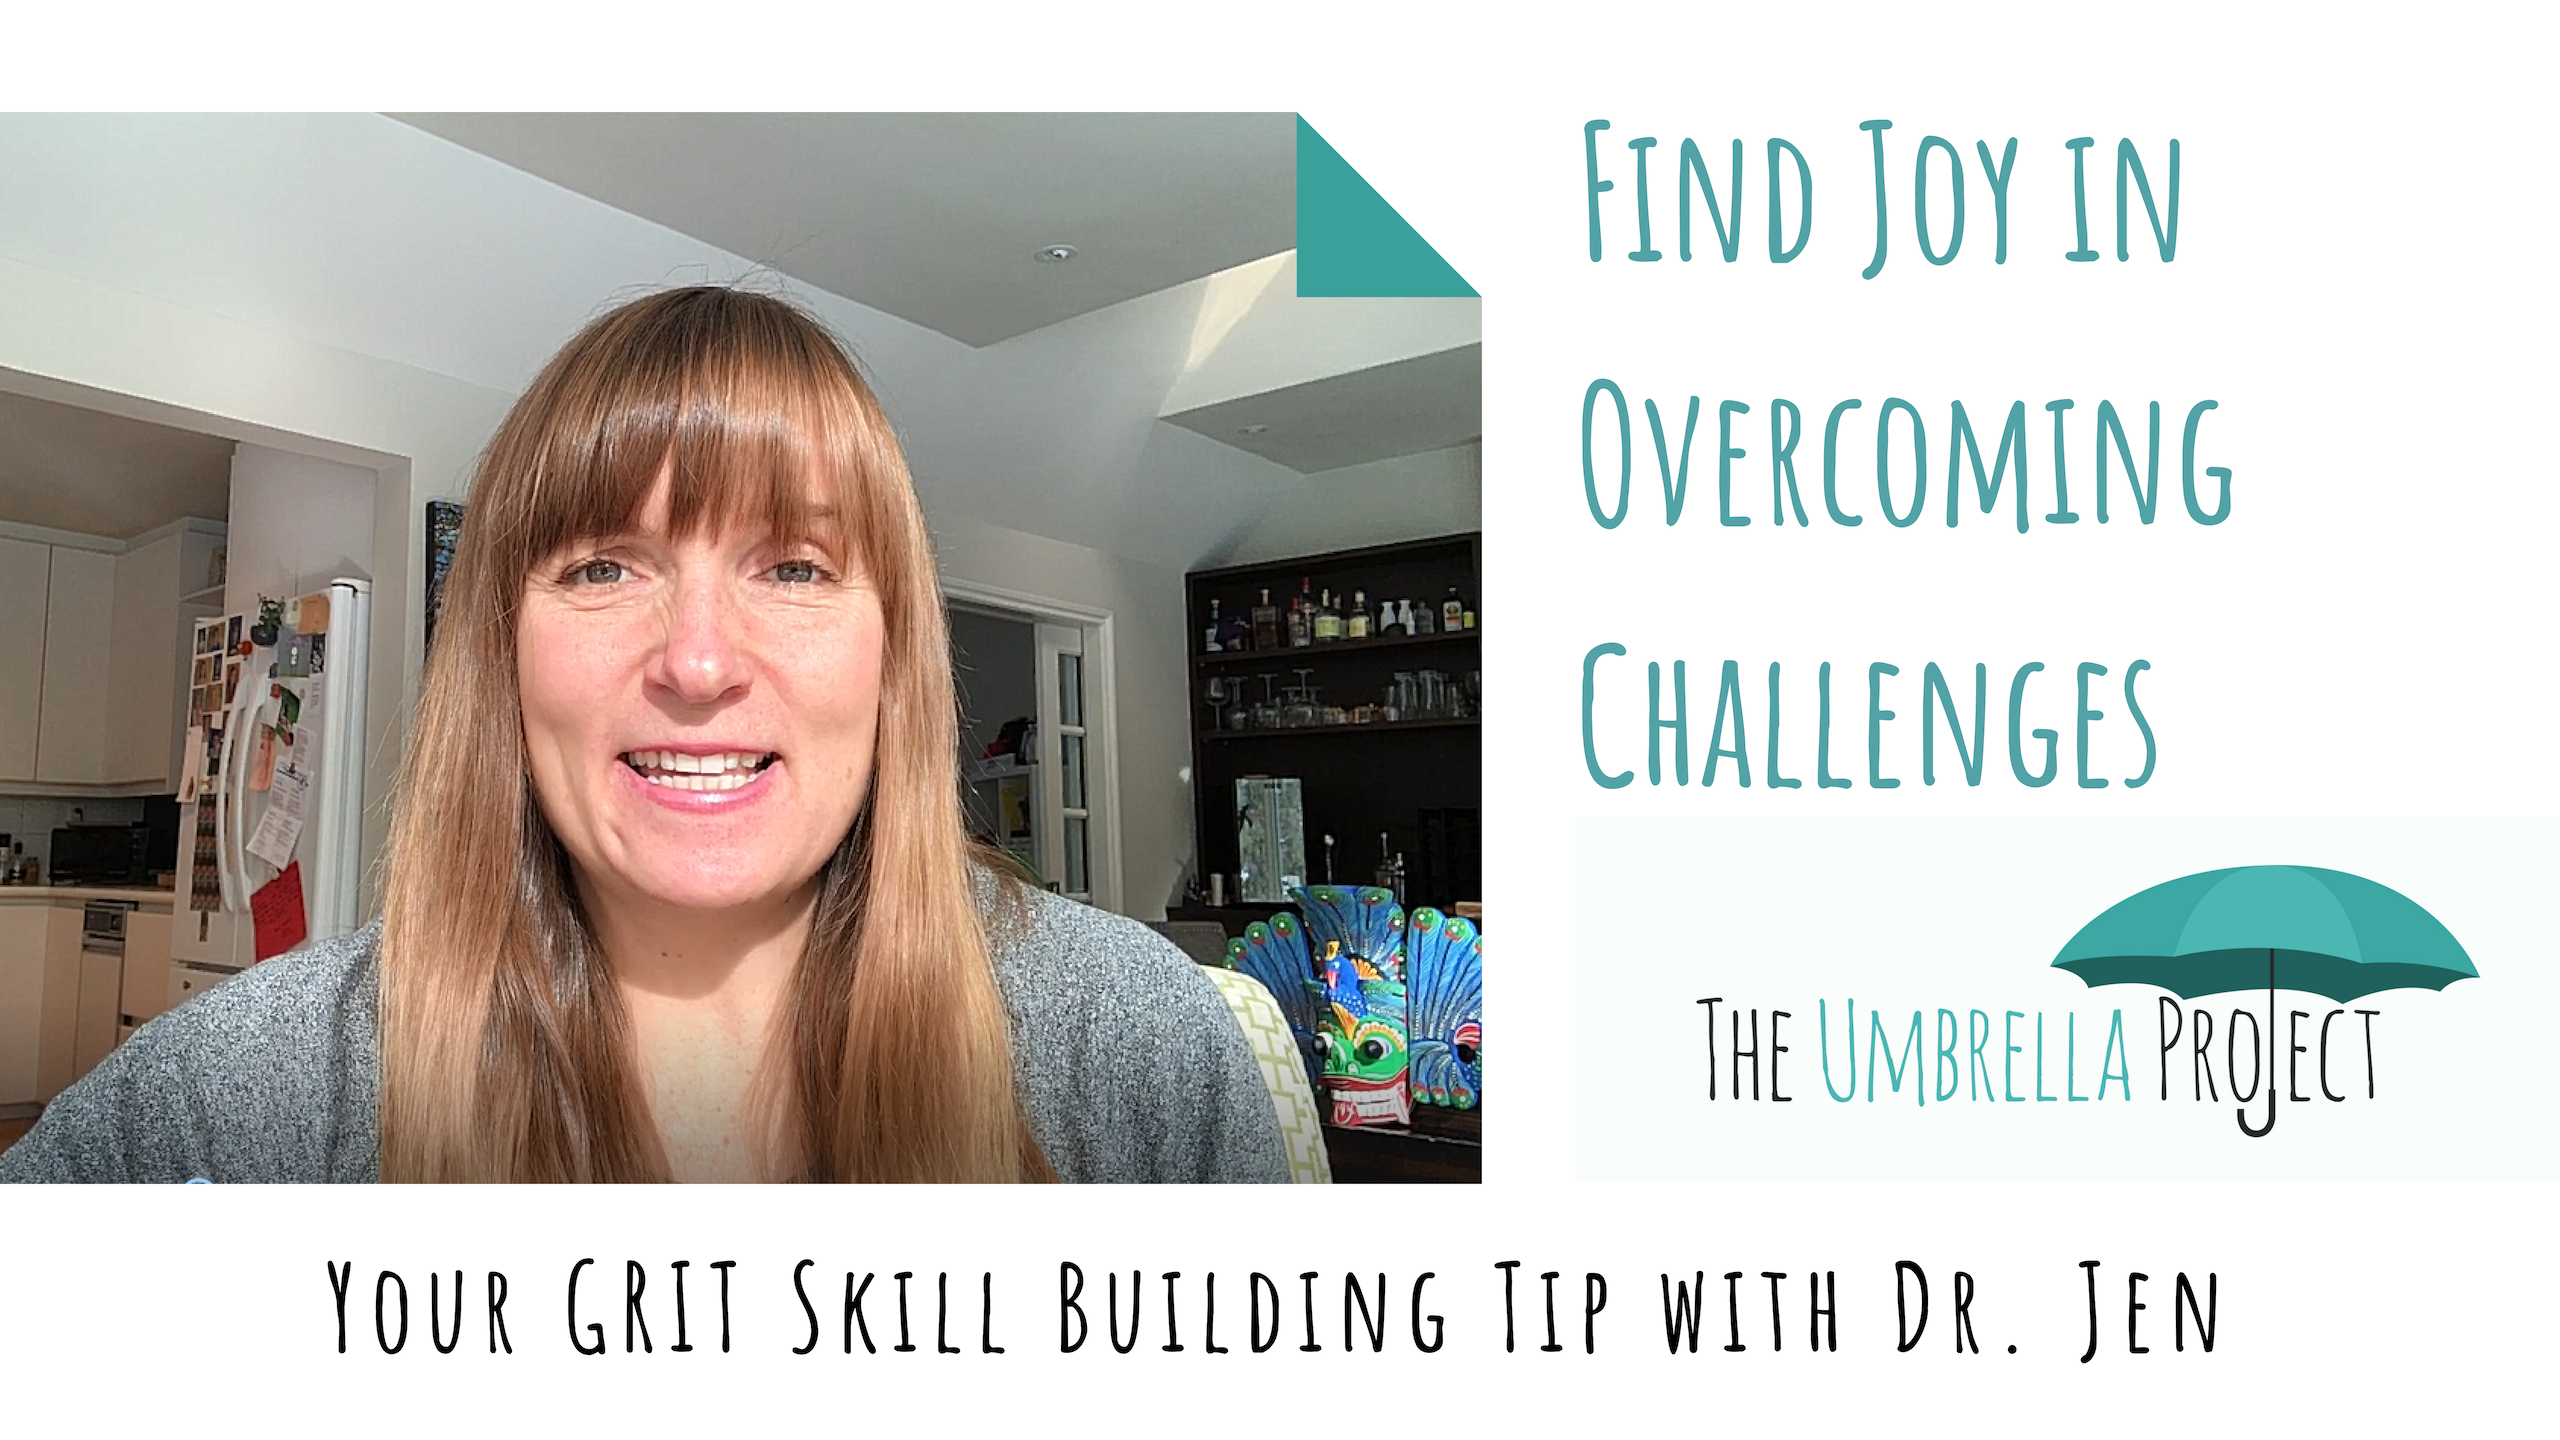 Find Joy in Overcoming Challenges: Your Grit Skill Building Tip with Dr. Jen